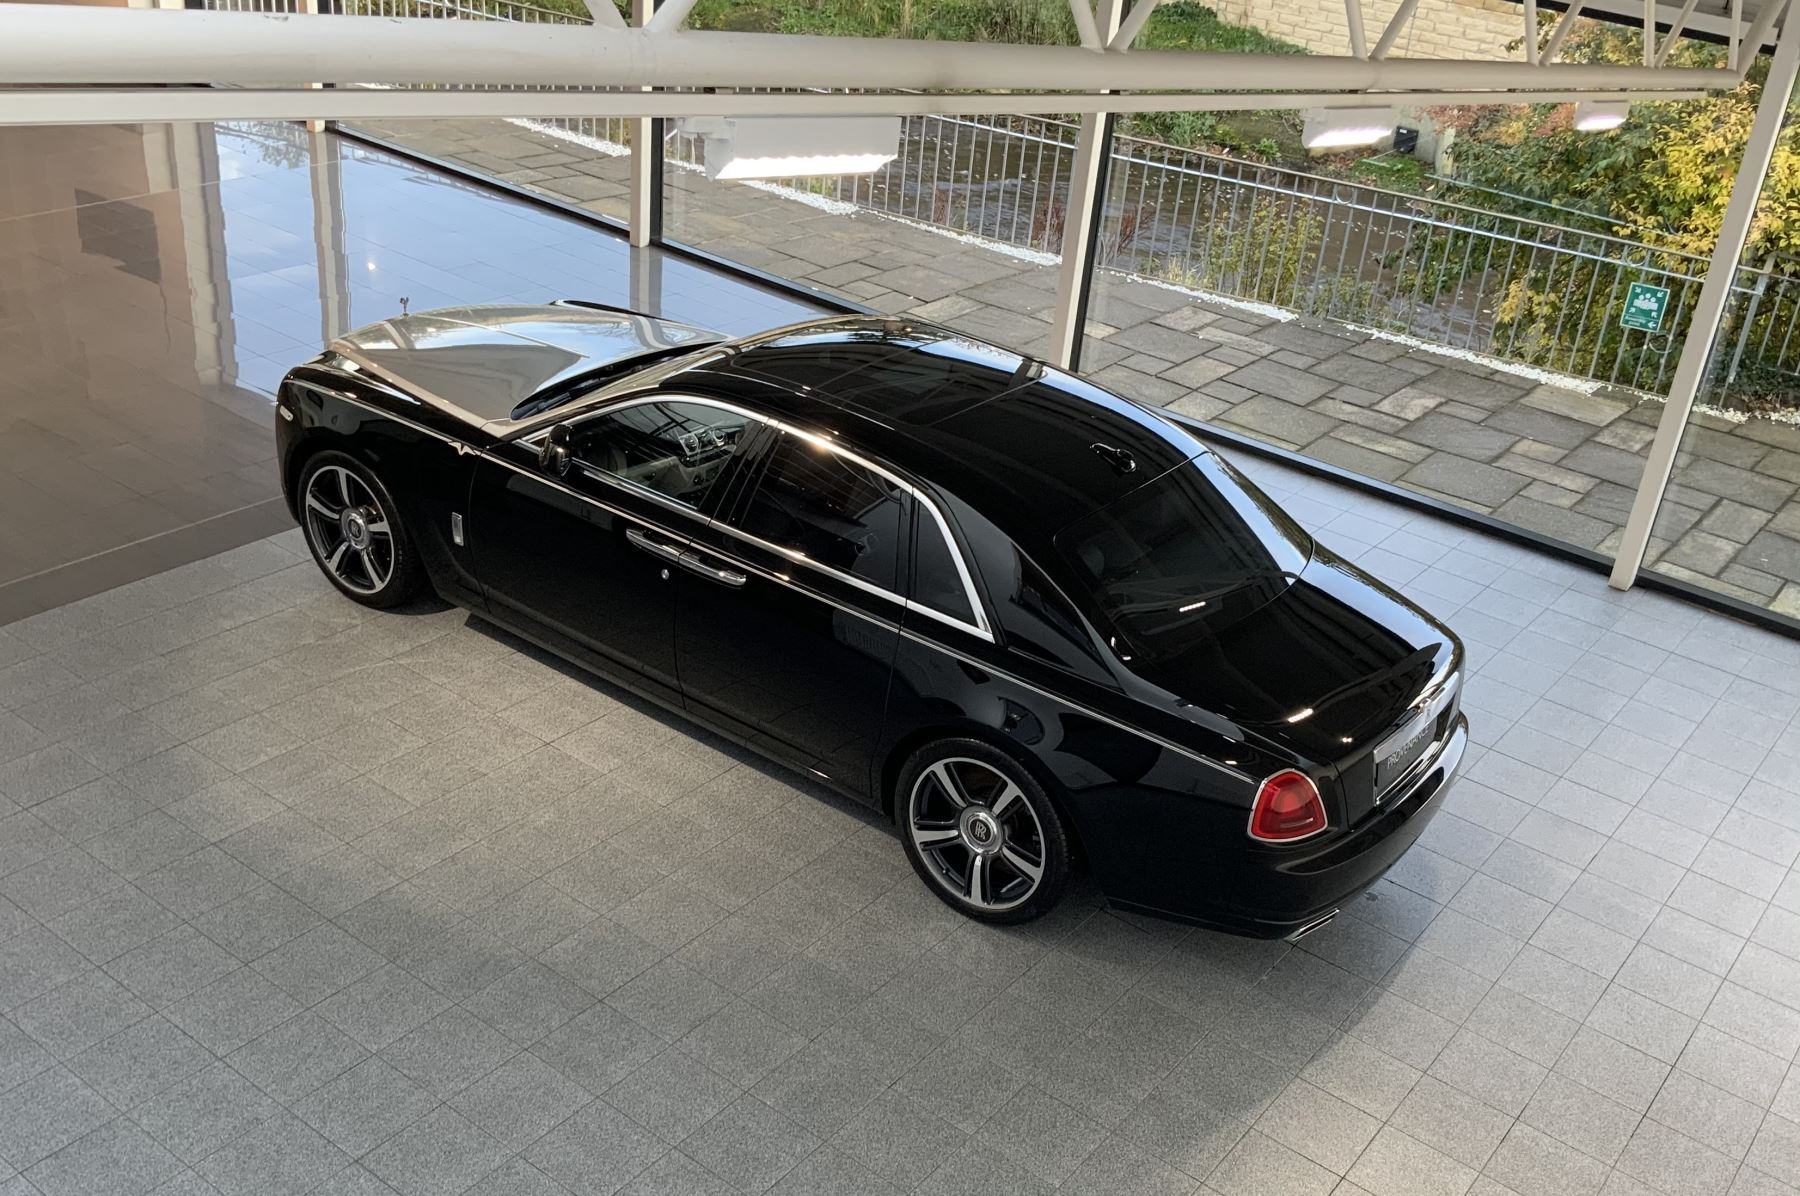 Rolls-Royce Ghost V-SPEC 4dr Auto image 25